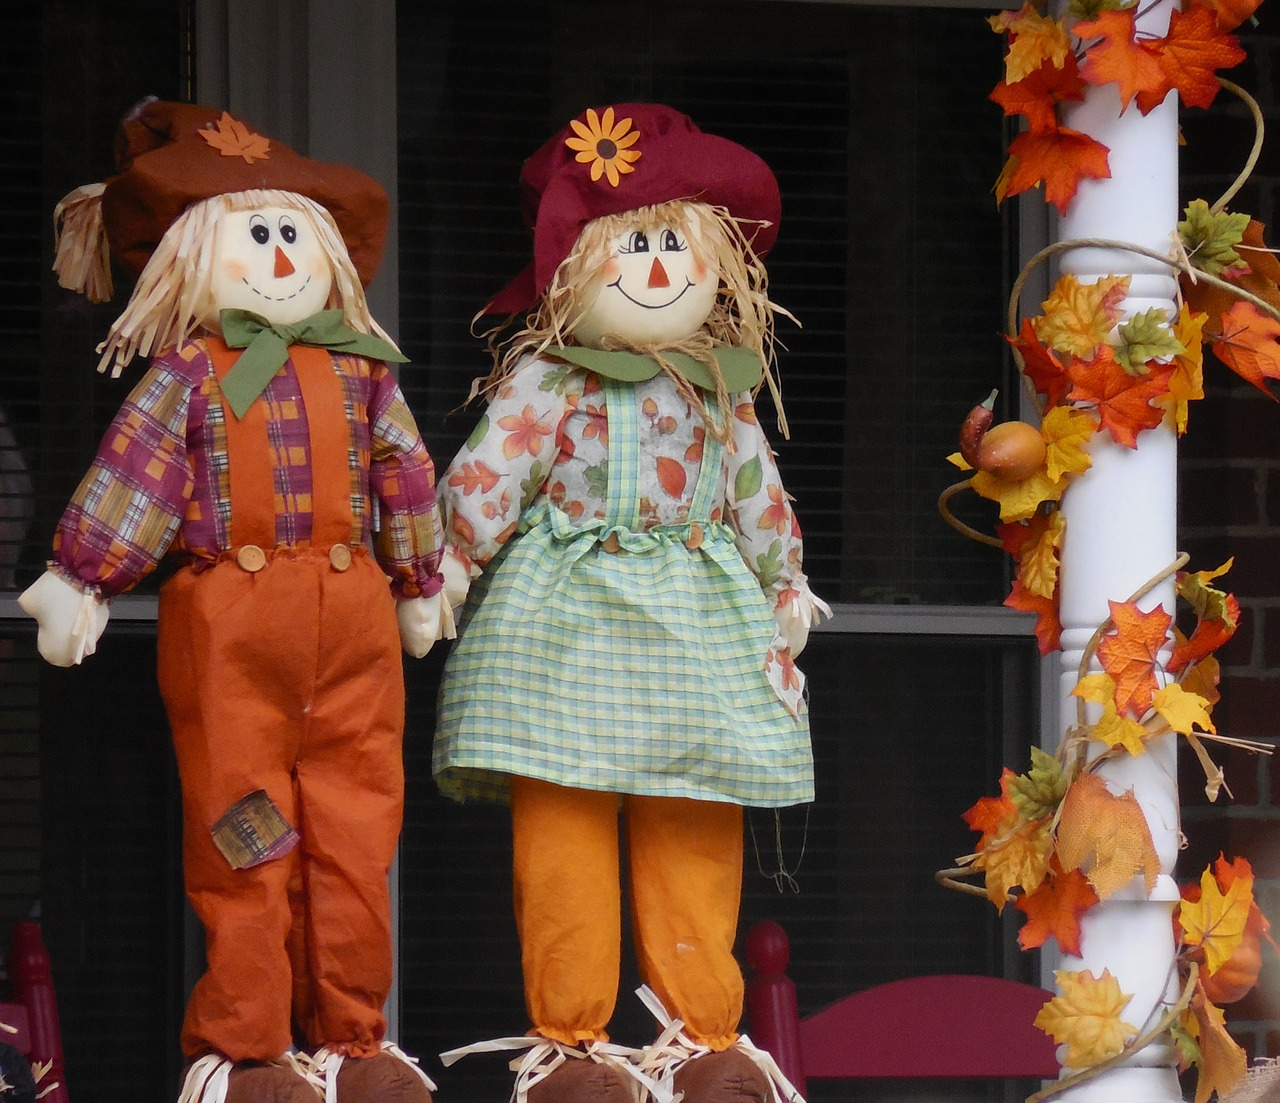 two small smiling scarecrows